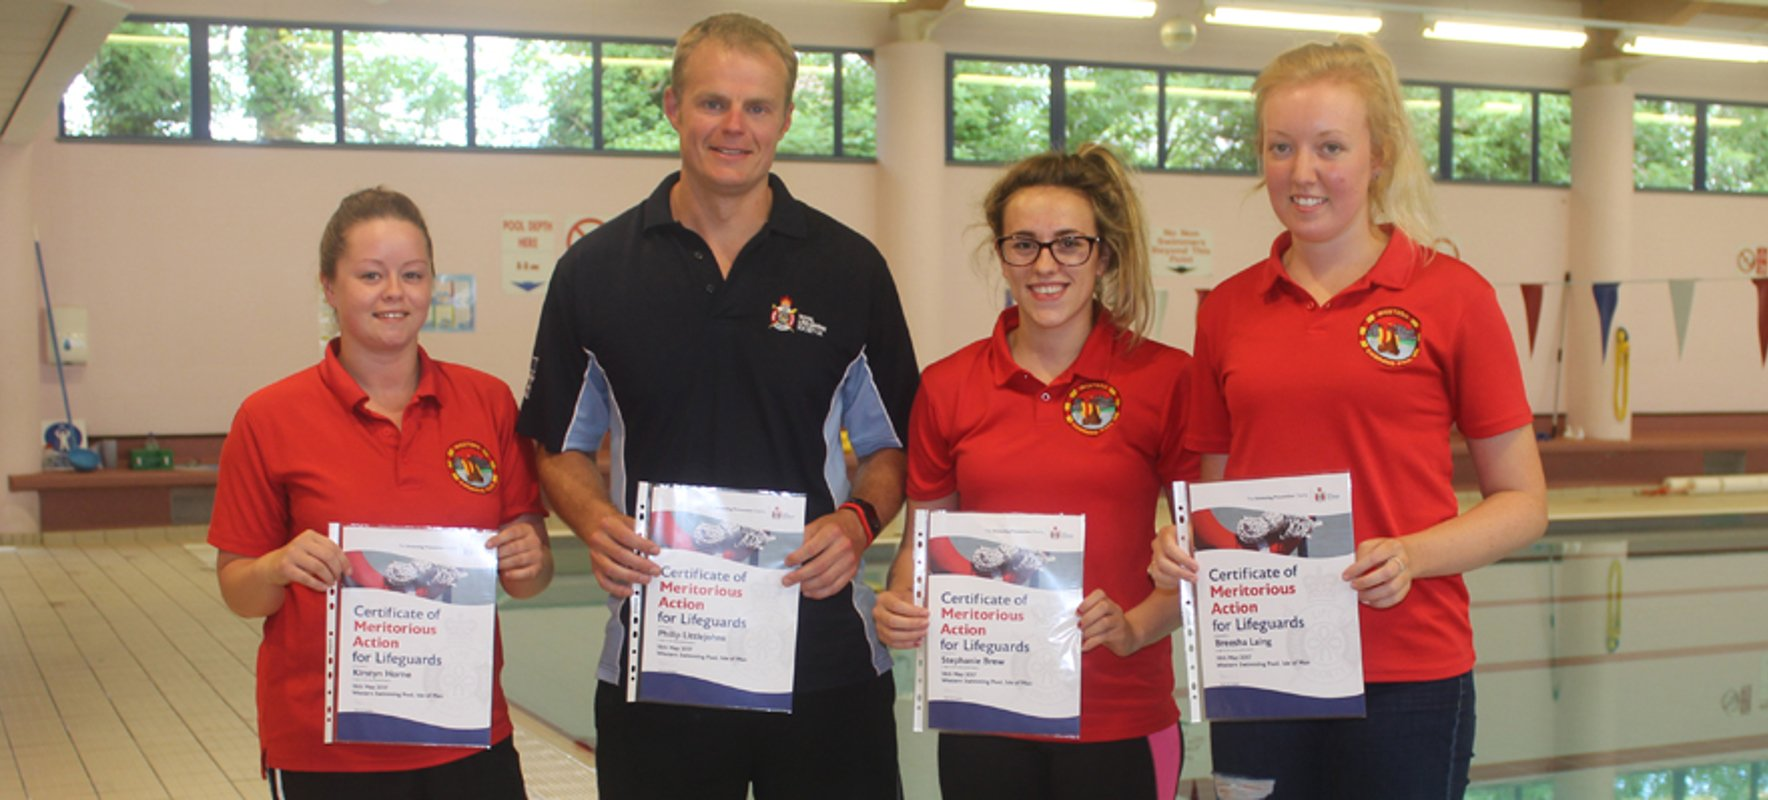 Local lifeguards honoured for saving woman's life